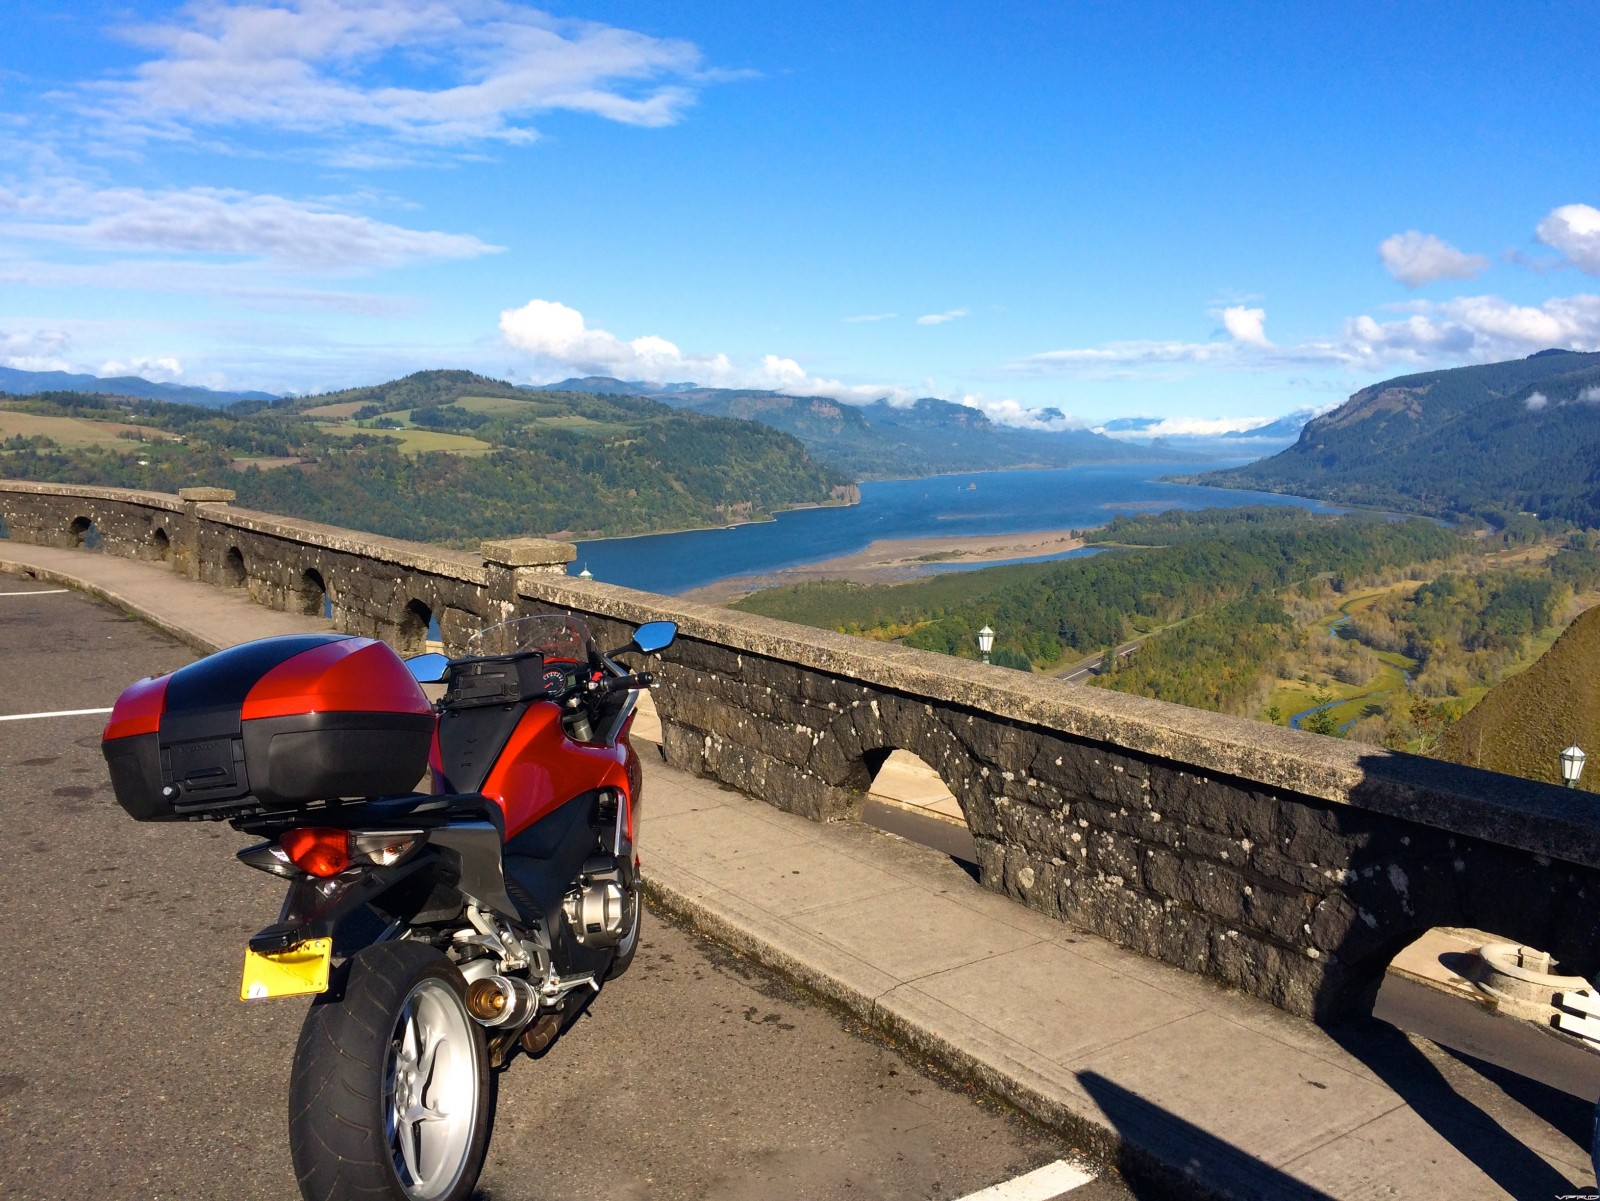 Vista House at Crown Point - Columbia River Gorge, Oregon